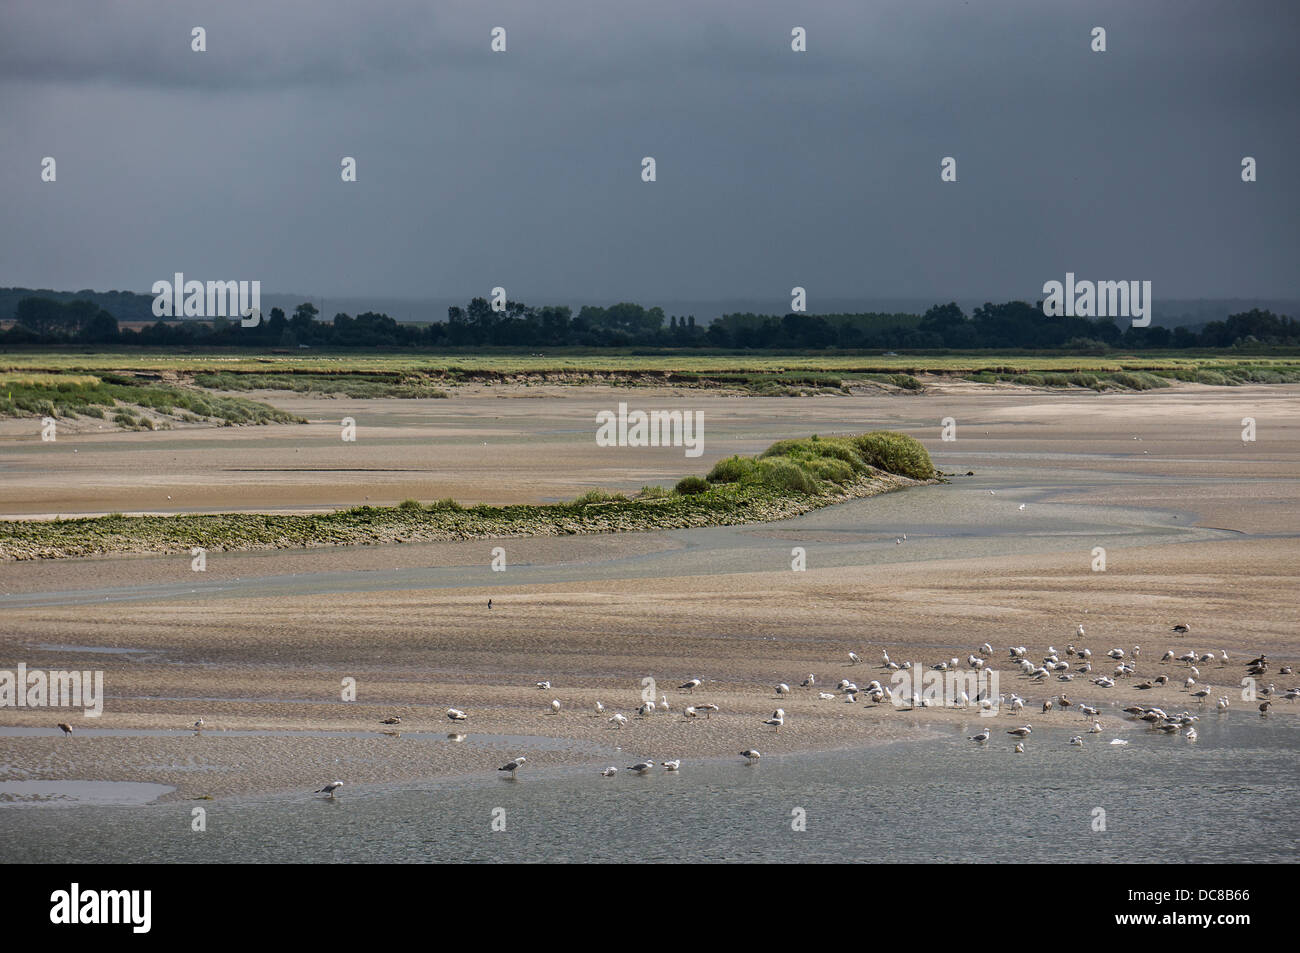 Seagulls on the beach at Saint-Valery-sur-Somme, a commune in the Somme department, northern France. - Stock Image